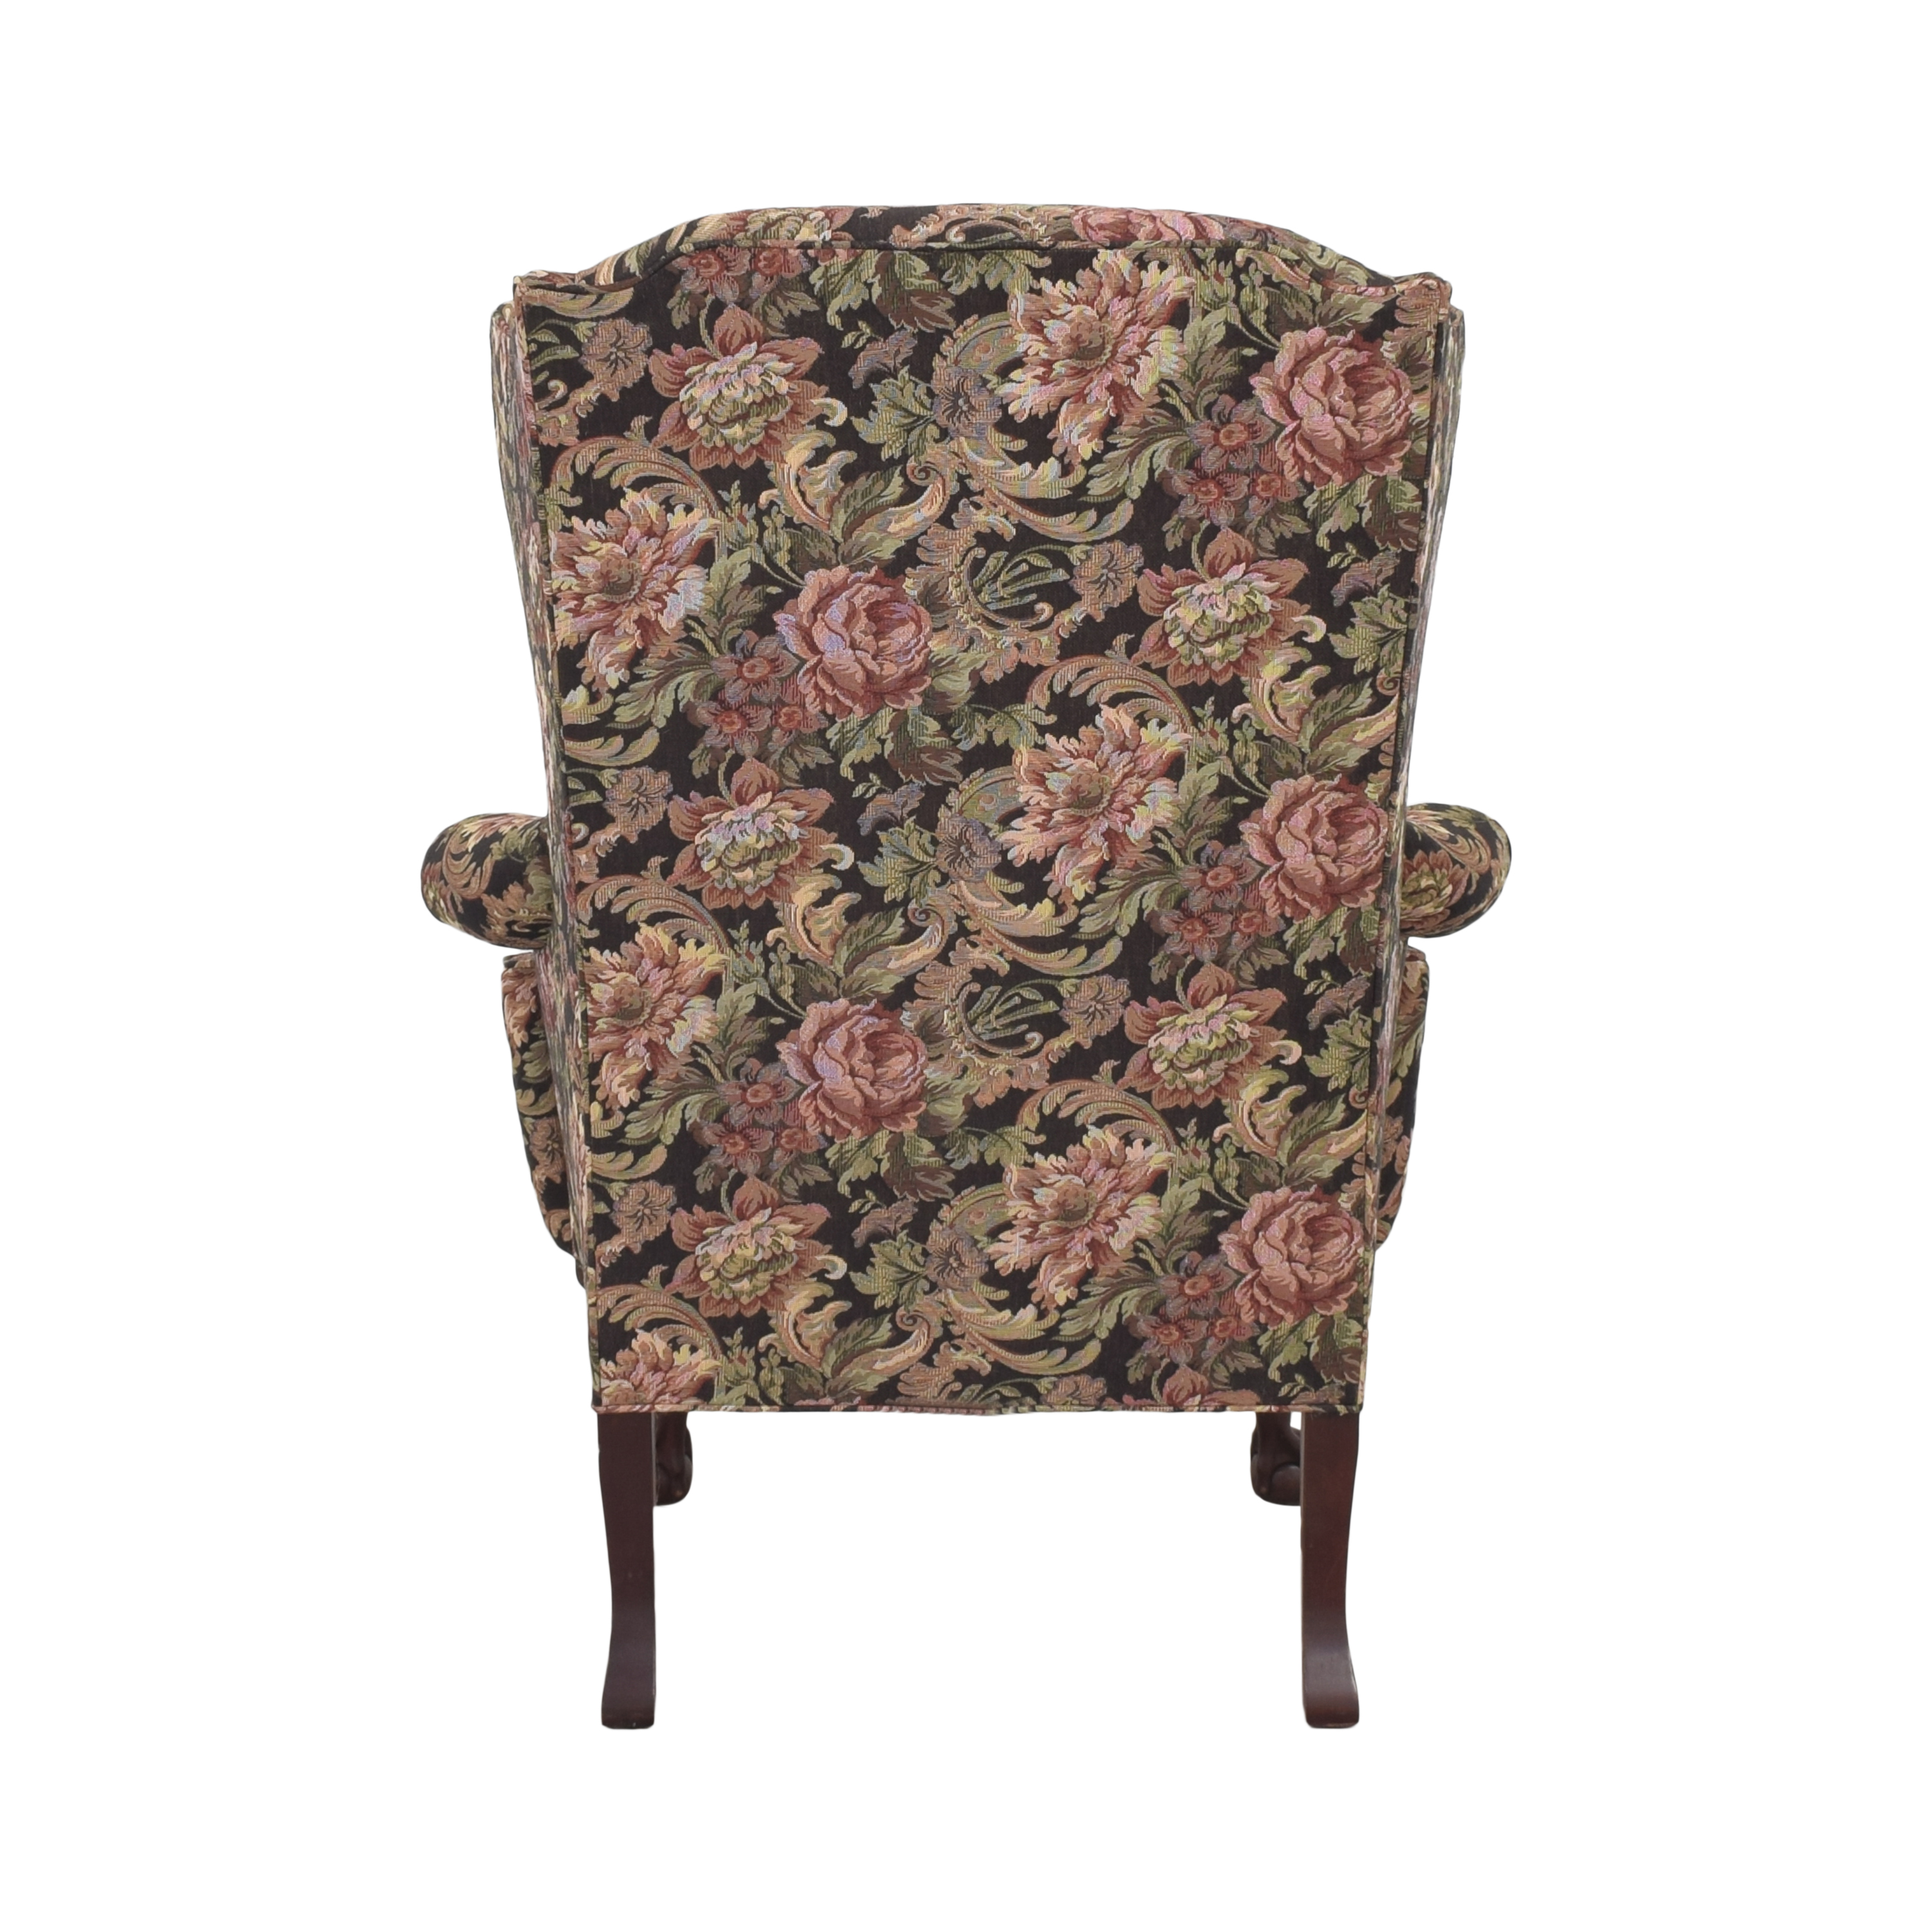 Thomasville Thomasville Queen Anne Wing Back Chair